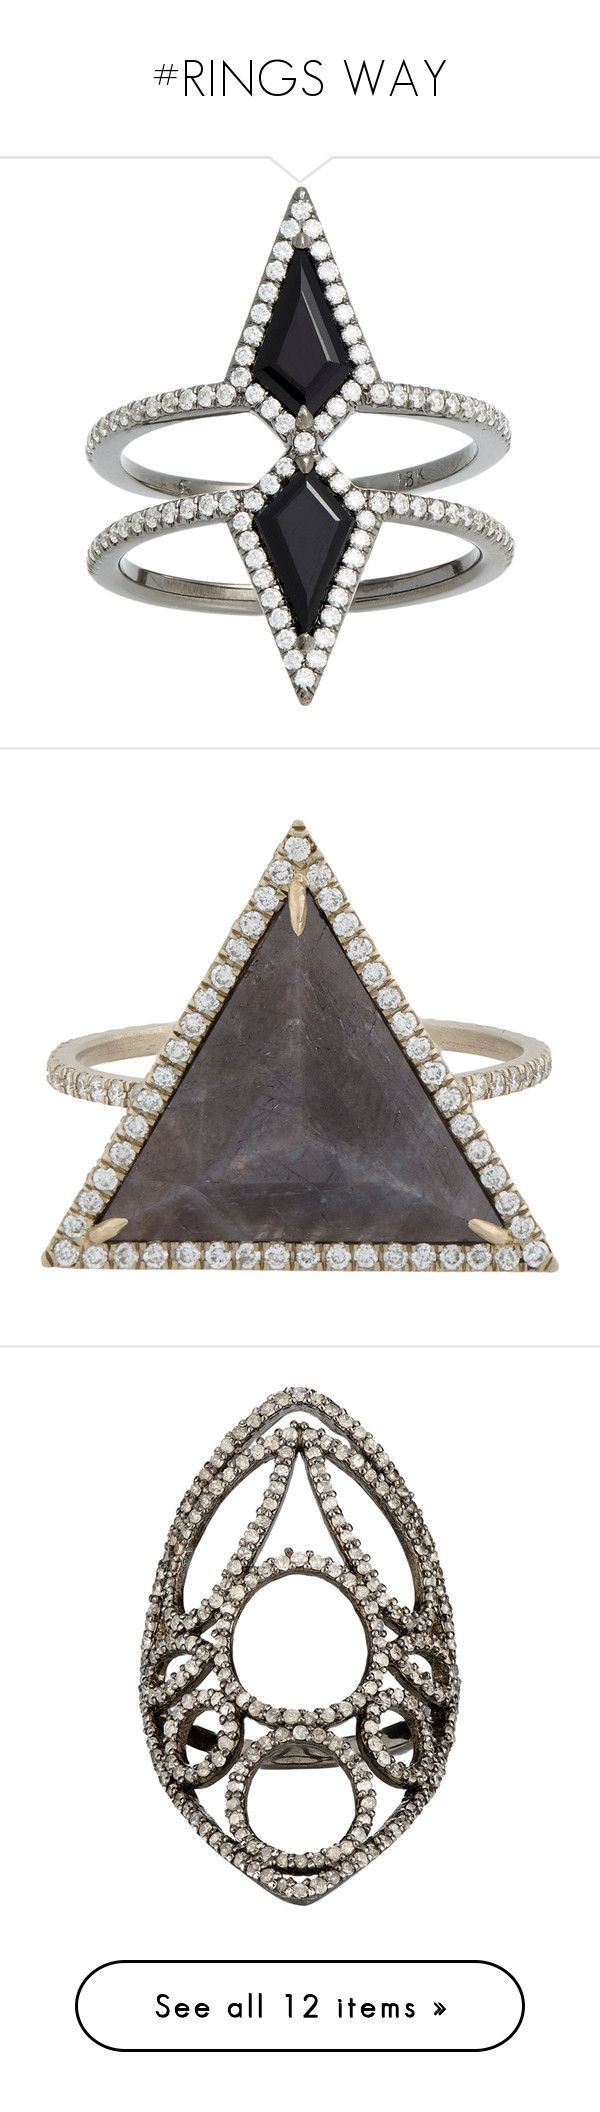 """#RINGS WAY"" by lolgenie ❤ liked on Polyvore featuring jewelry, rings, accessories, sormukset, colorless, geometric rings, 18 karat white gold ring, pave ring, band rings and white gold pave ring"